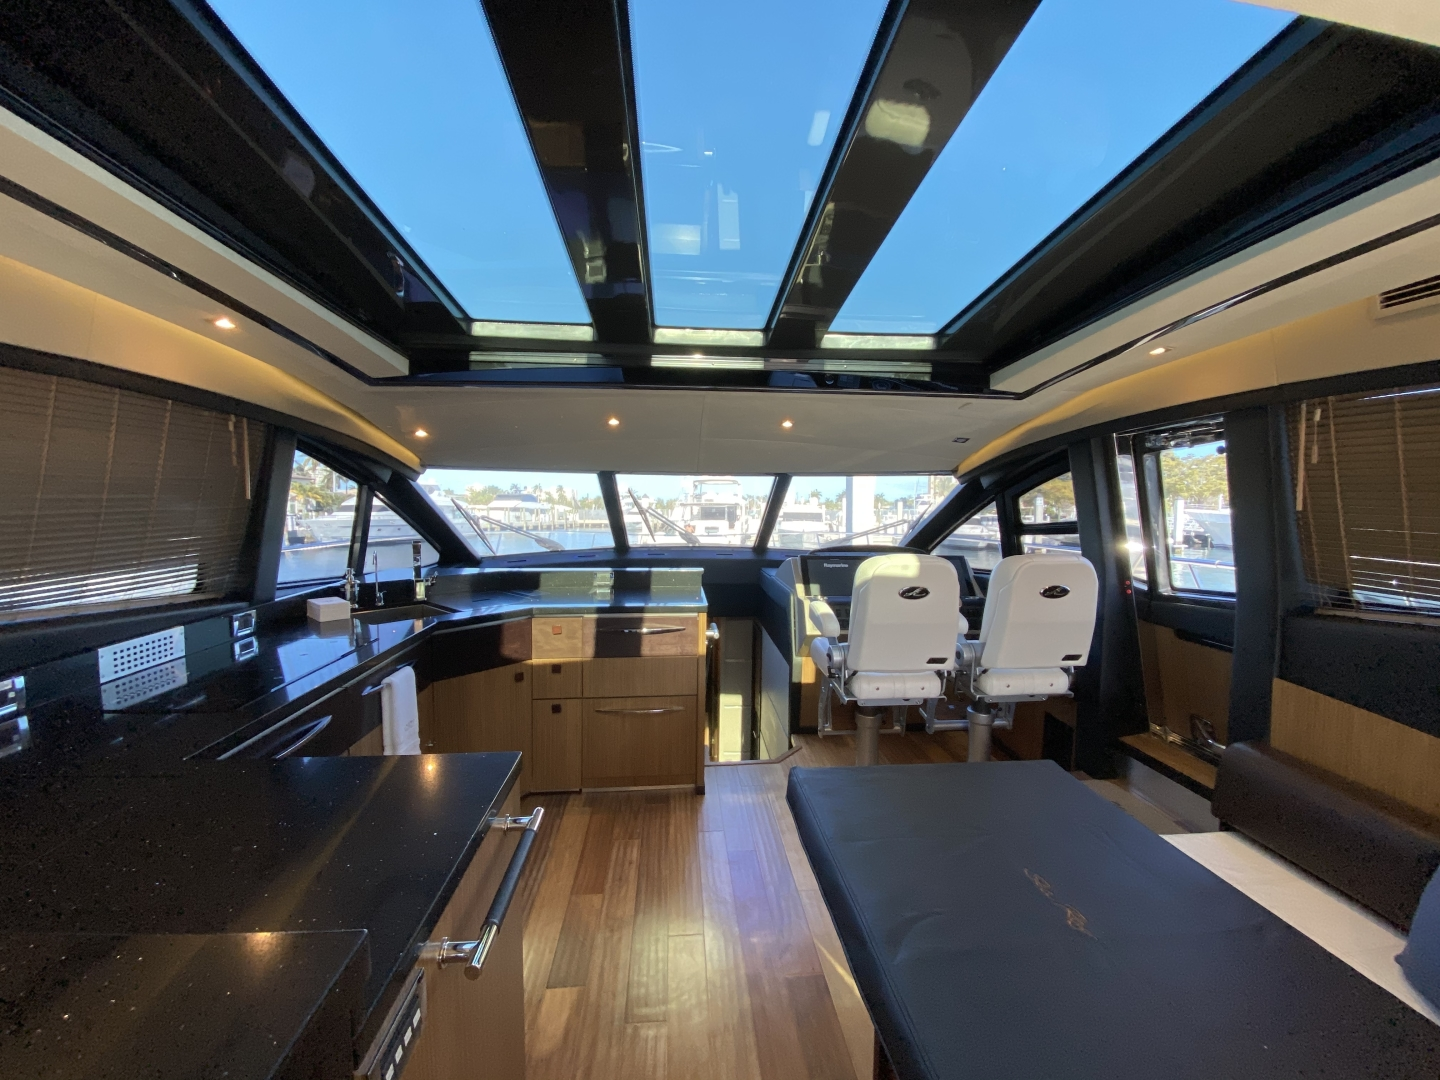 Sea Ray-L650 Express 2016-Cozy Fort Lauderdale-Florida-United States-2016 Sea Ray L650 Galley-1367654 | Thumbnail